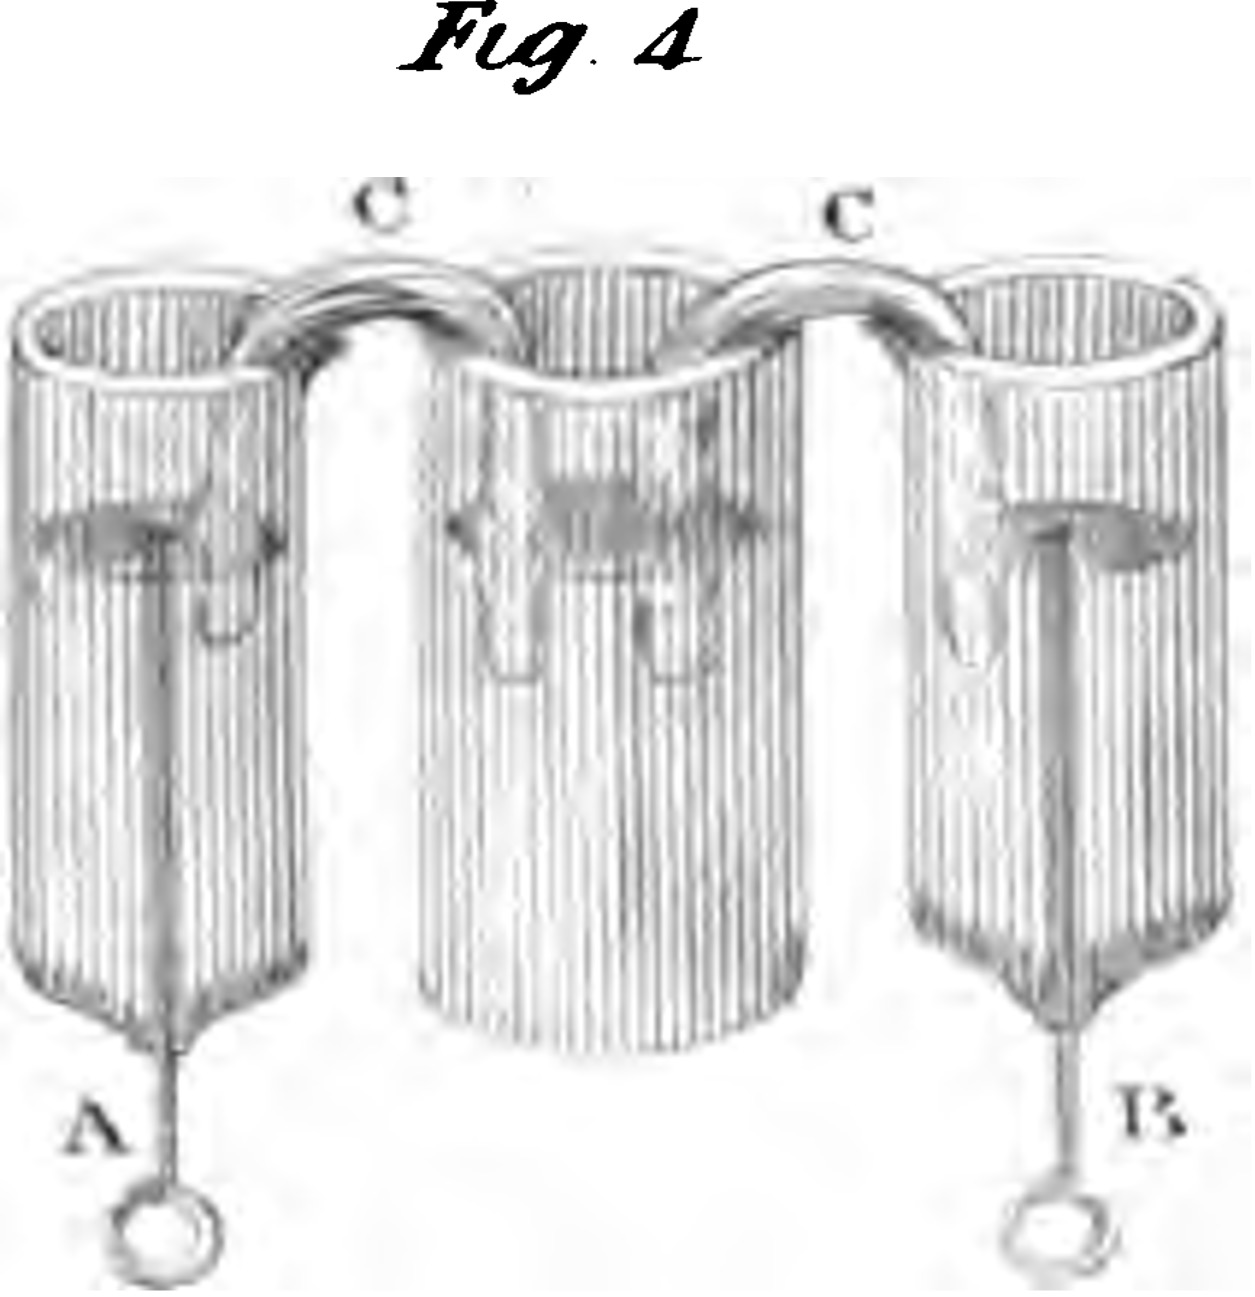 """Drawing of Davy´s experimental arrangement with three glass tubes for the study """"On the Passage of Acids, Alkalies, and other Substances through various attracting chemical Menstrua, by Means of Electricity"""". It shows three glass tubes with platina wires as poles in the two outer tubes A and B, which communicate with the middle tube by strips of amianthus C (i.e. a fine silky asbestos), wetted with distilled water. The experiments are described in the text. It clearly confirms the migration of ions by electrophoresis."""